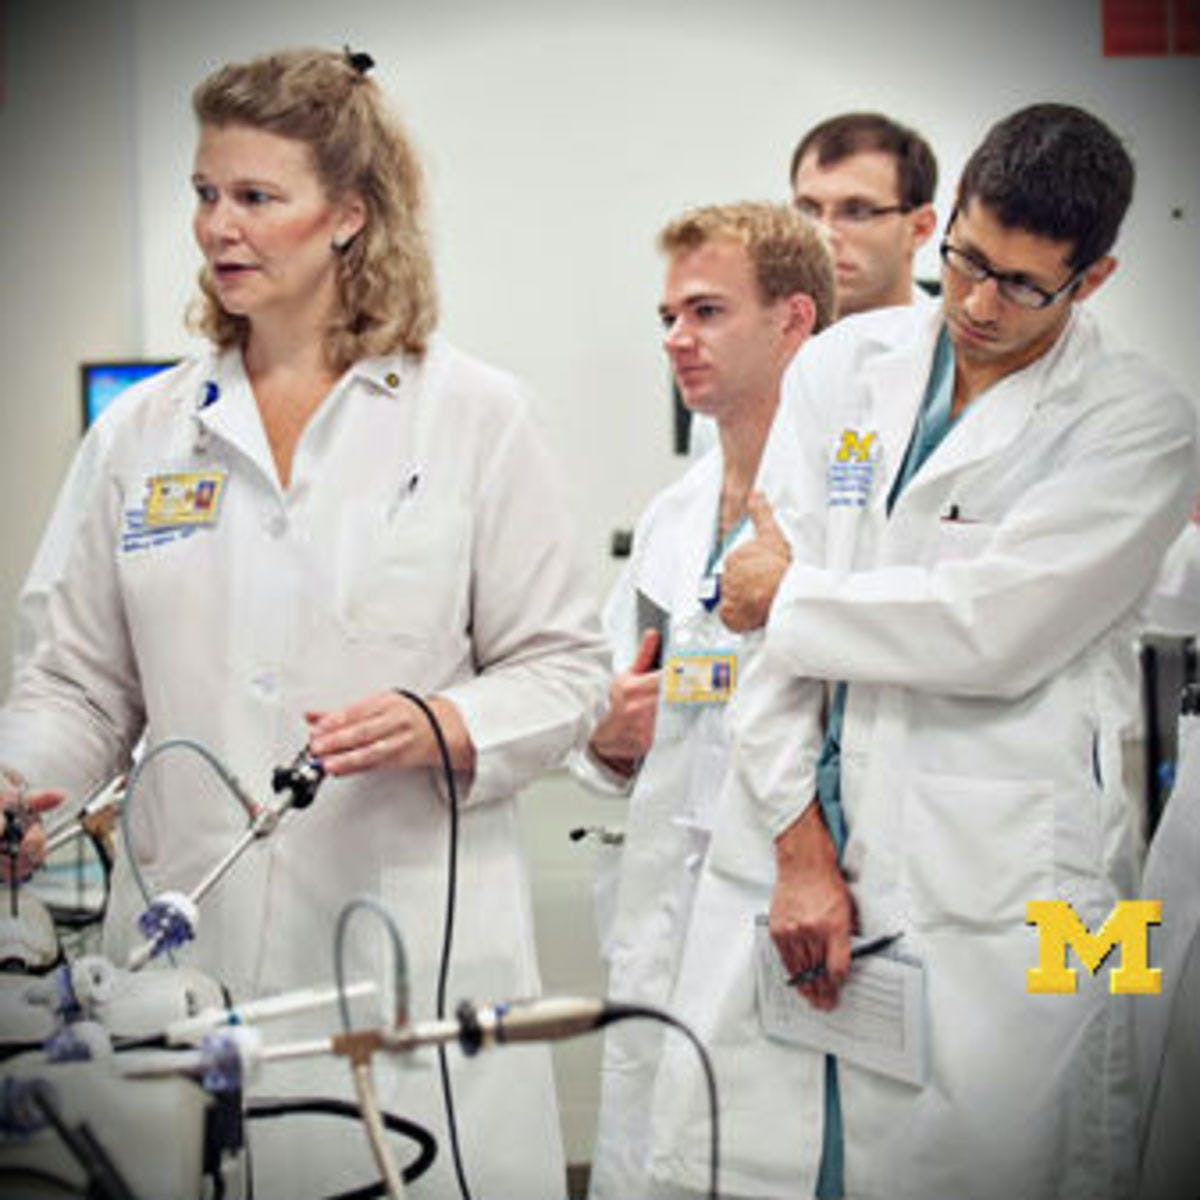 Instructional Methods in Health Professions Education